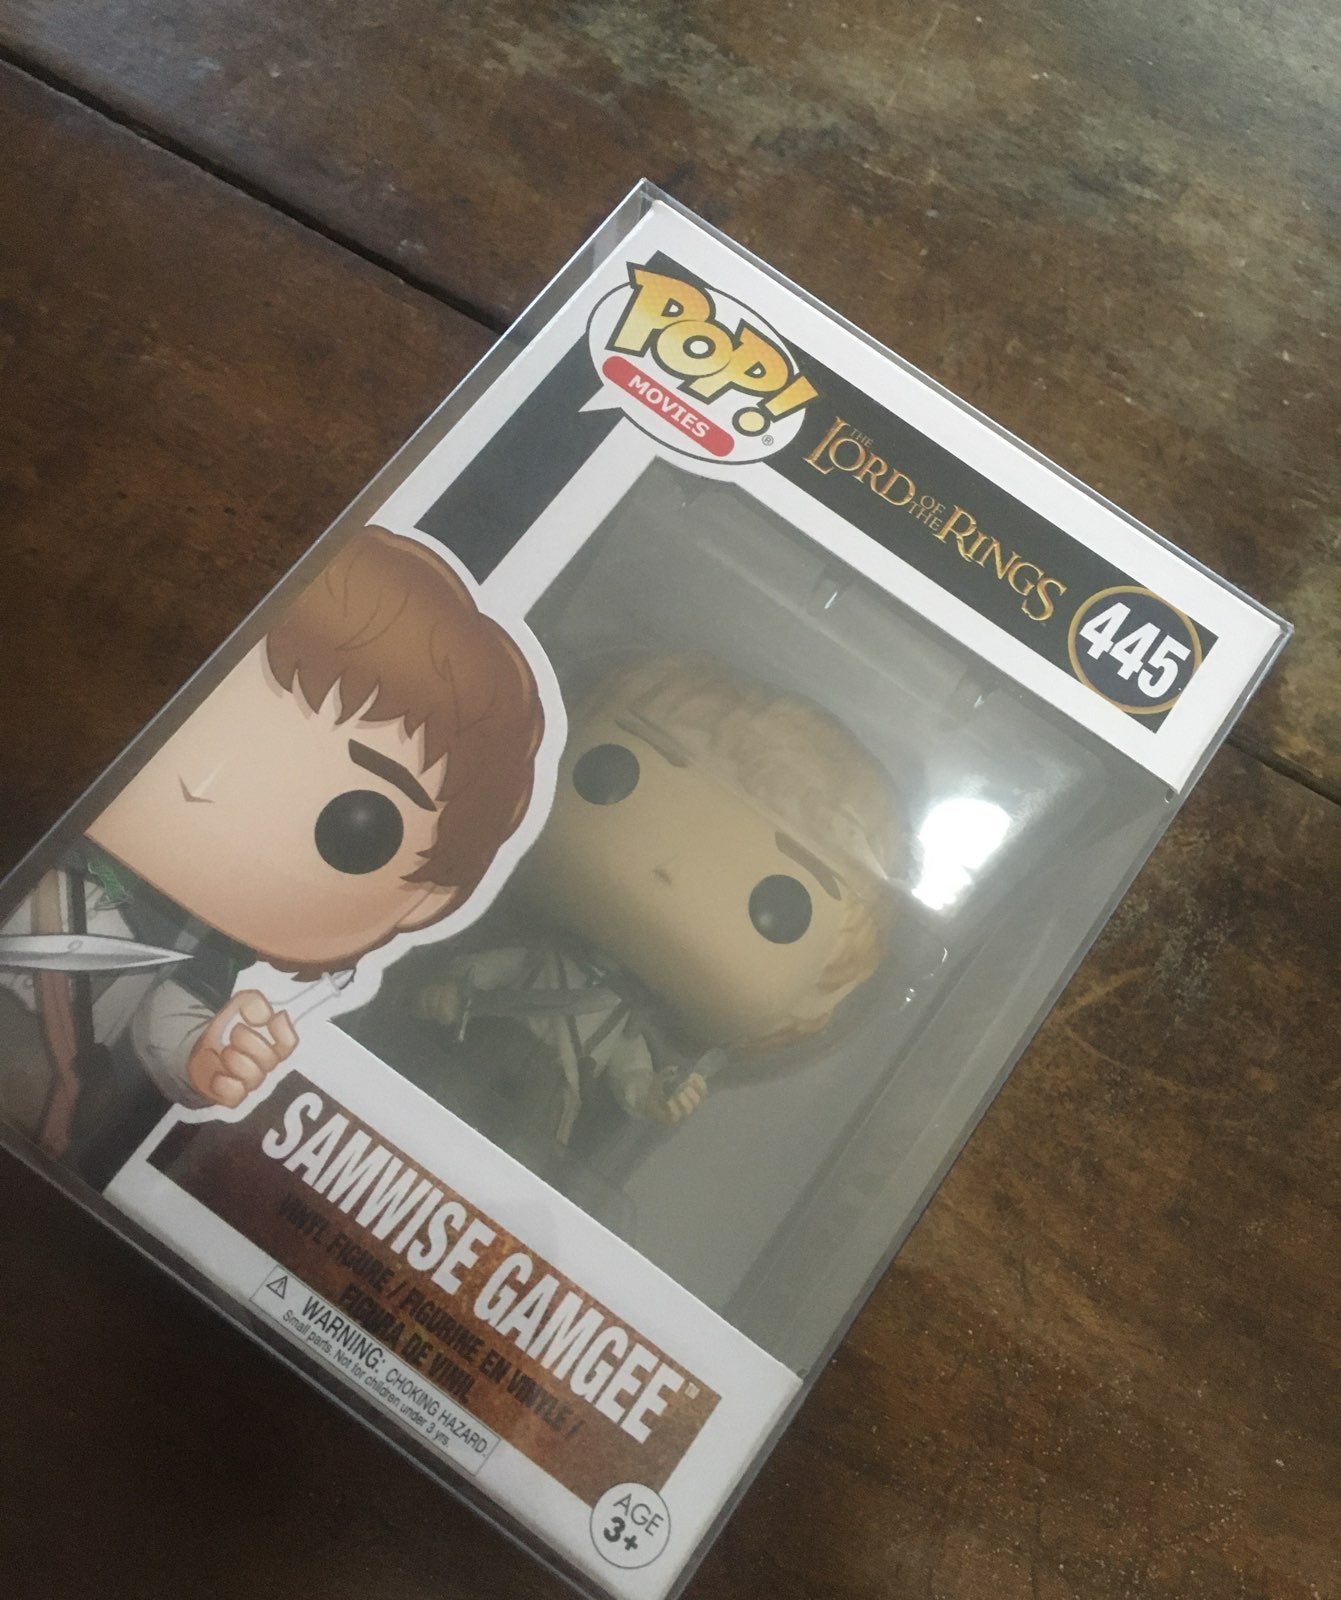 Funko Pop samwise gamgee lord of the rin